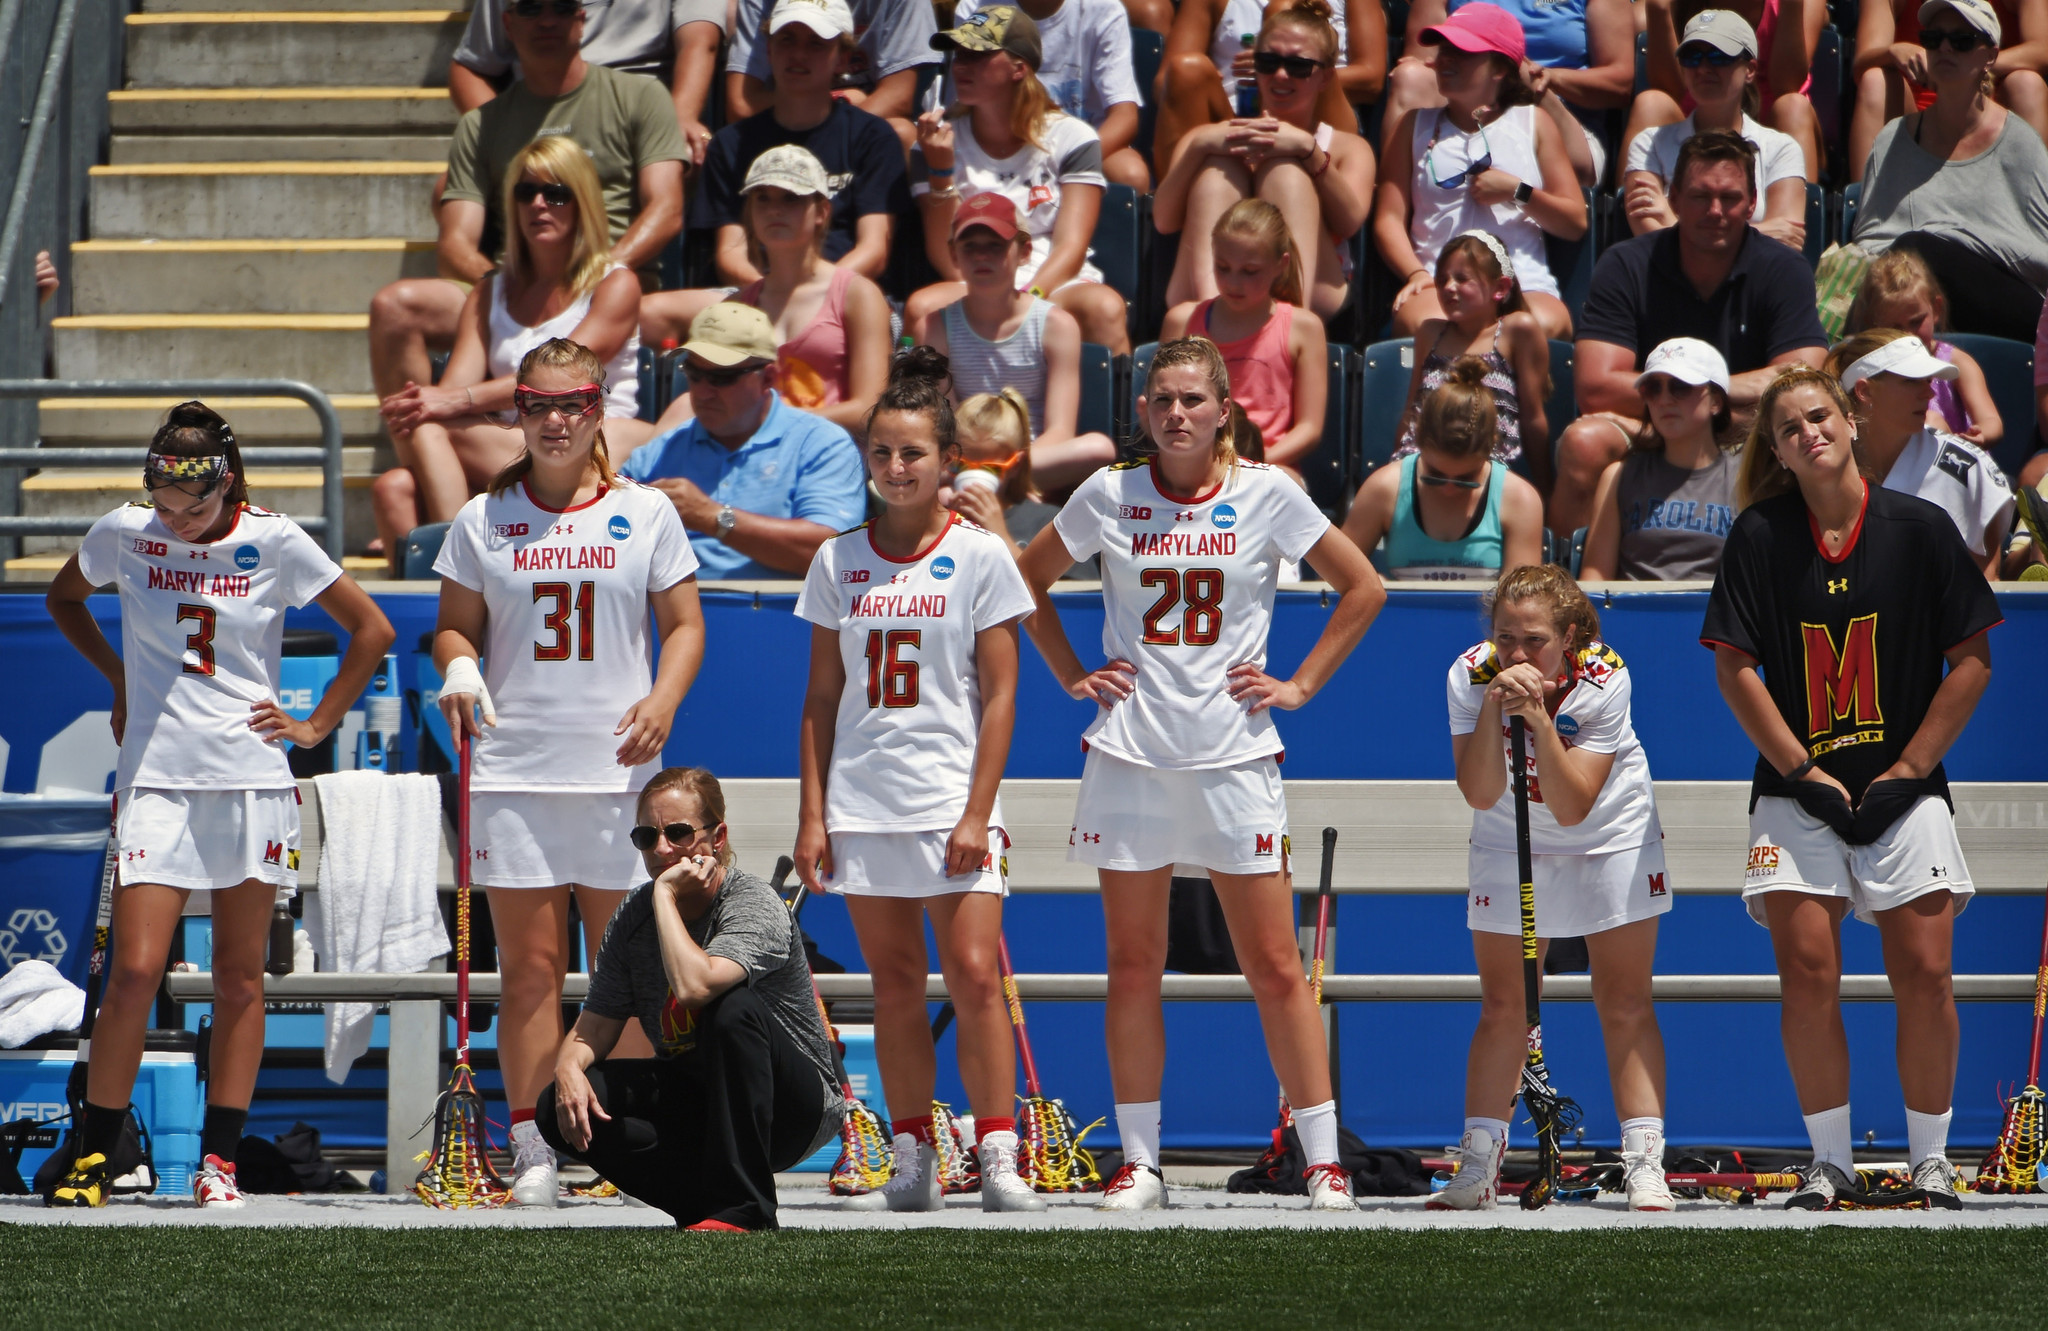 Bal-north-carolina-maryland-womens-lacrosse-final-20160529